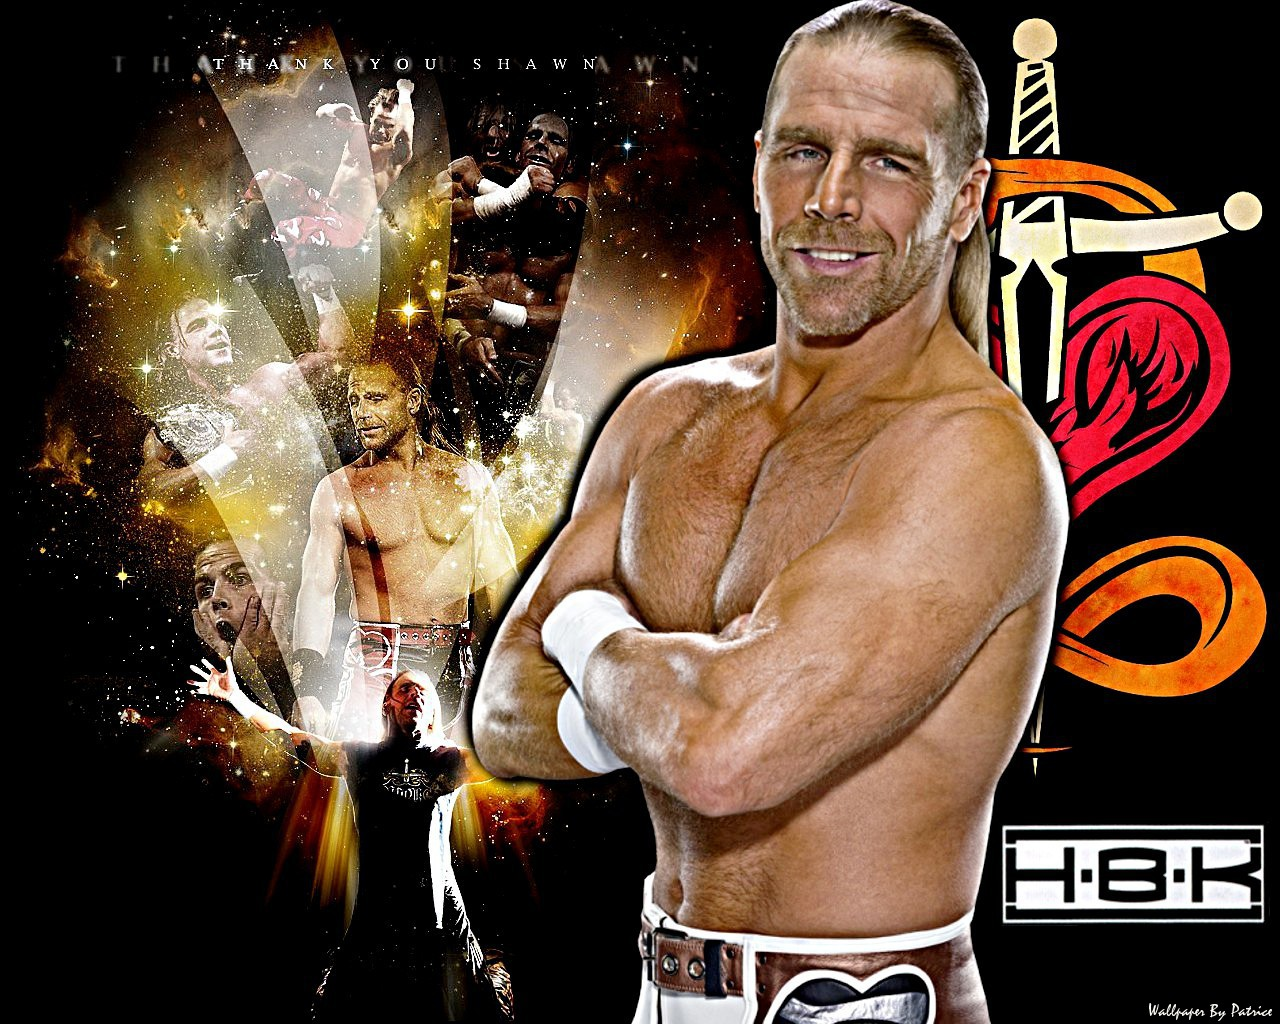 WWE Superstar Shawn Michaels HD wallpapers 1280x1024